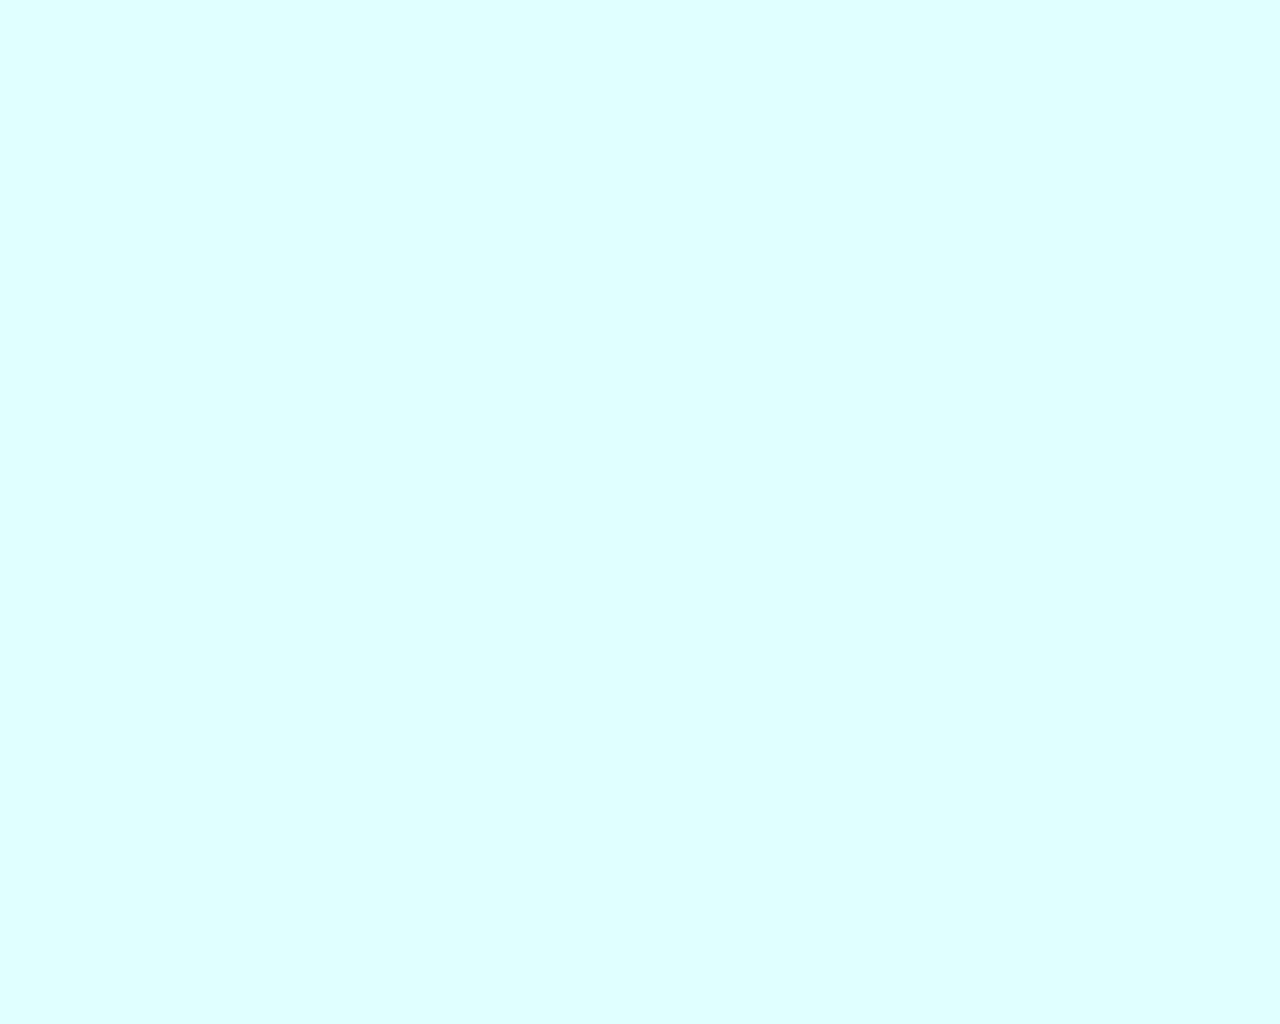 1280x1024 Light Cyan Solid Color Background